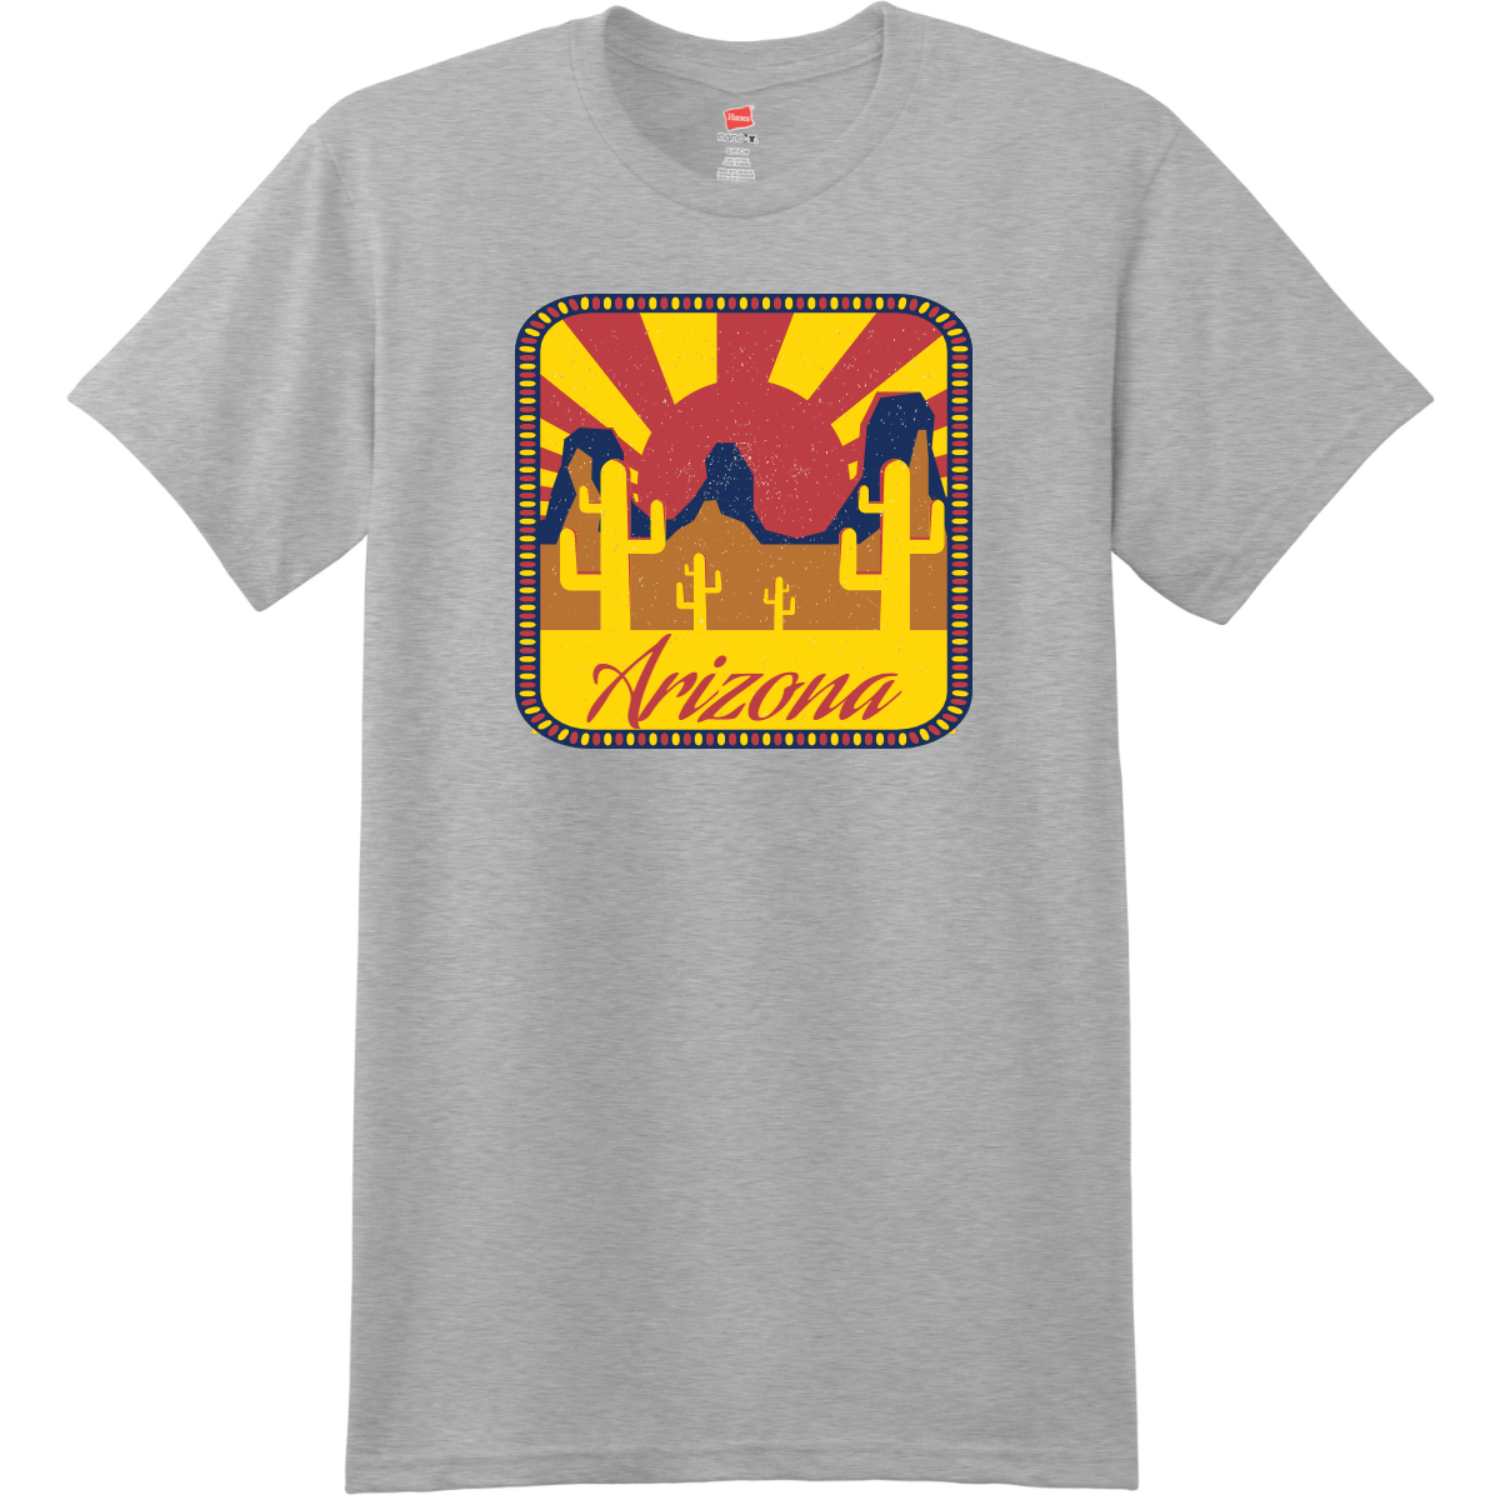 Arizona Desert Sun T-Shirt Light Steel Hanes Nano 4980 Ringspun Cotton T Shirt